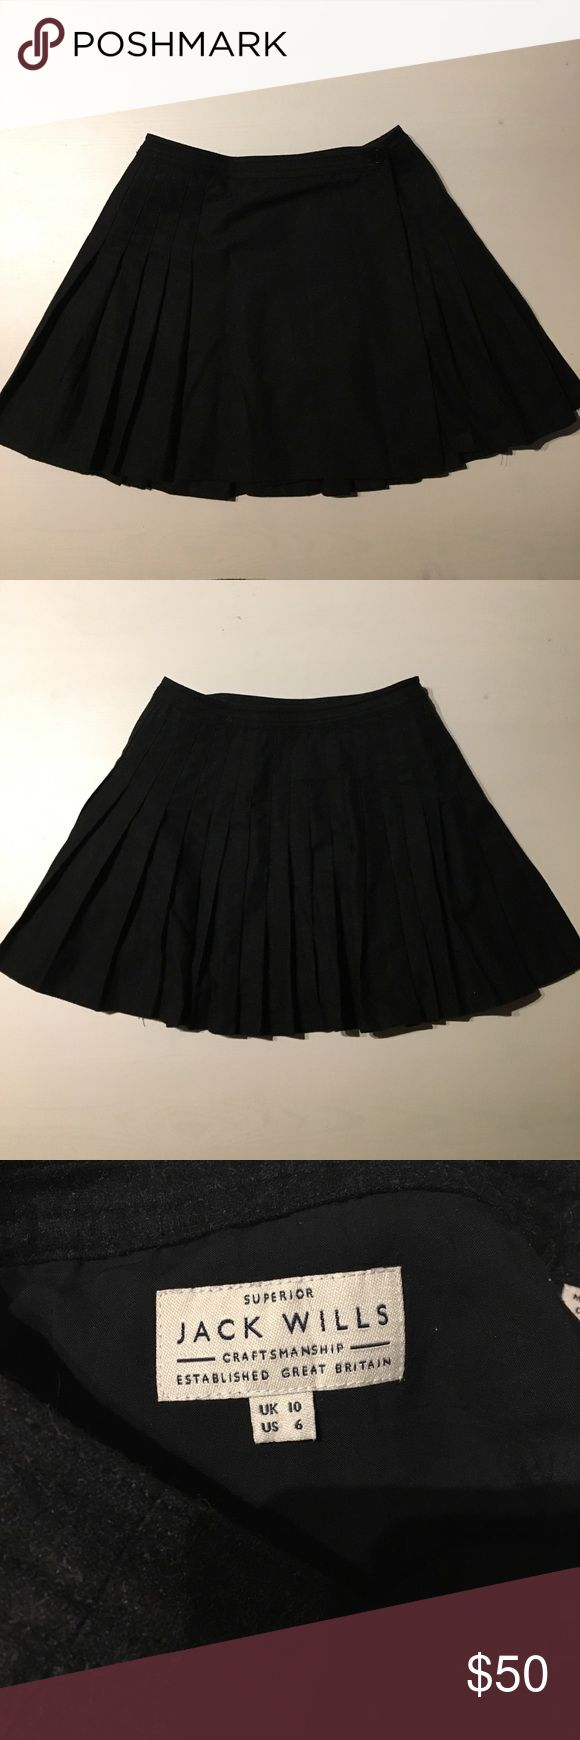 Jack Wills Black Wool Skirt - Size 6 Cute black skirt from Jack Wills in size 6. Warm and stylish. Excellent condition! Jack Wills Skirts Mini